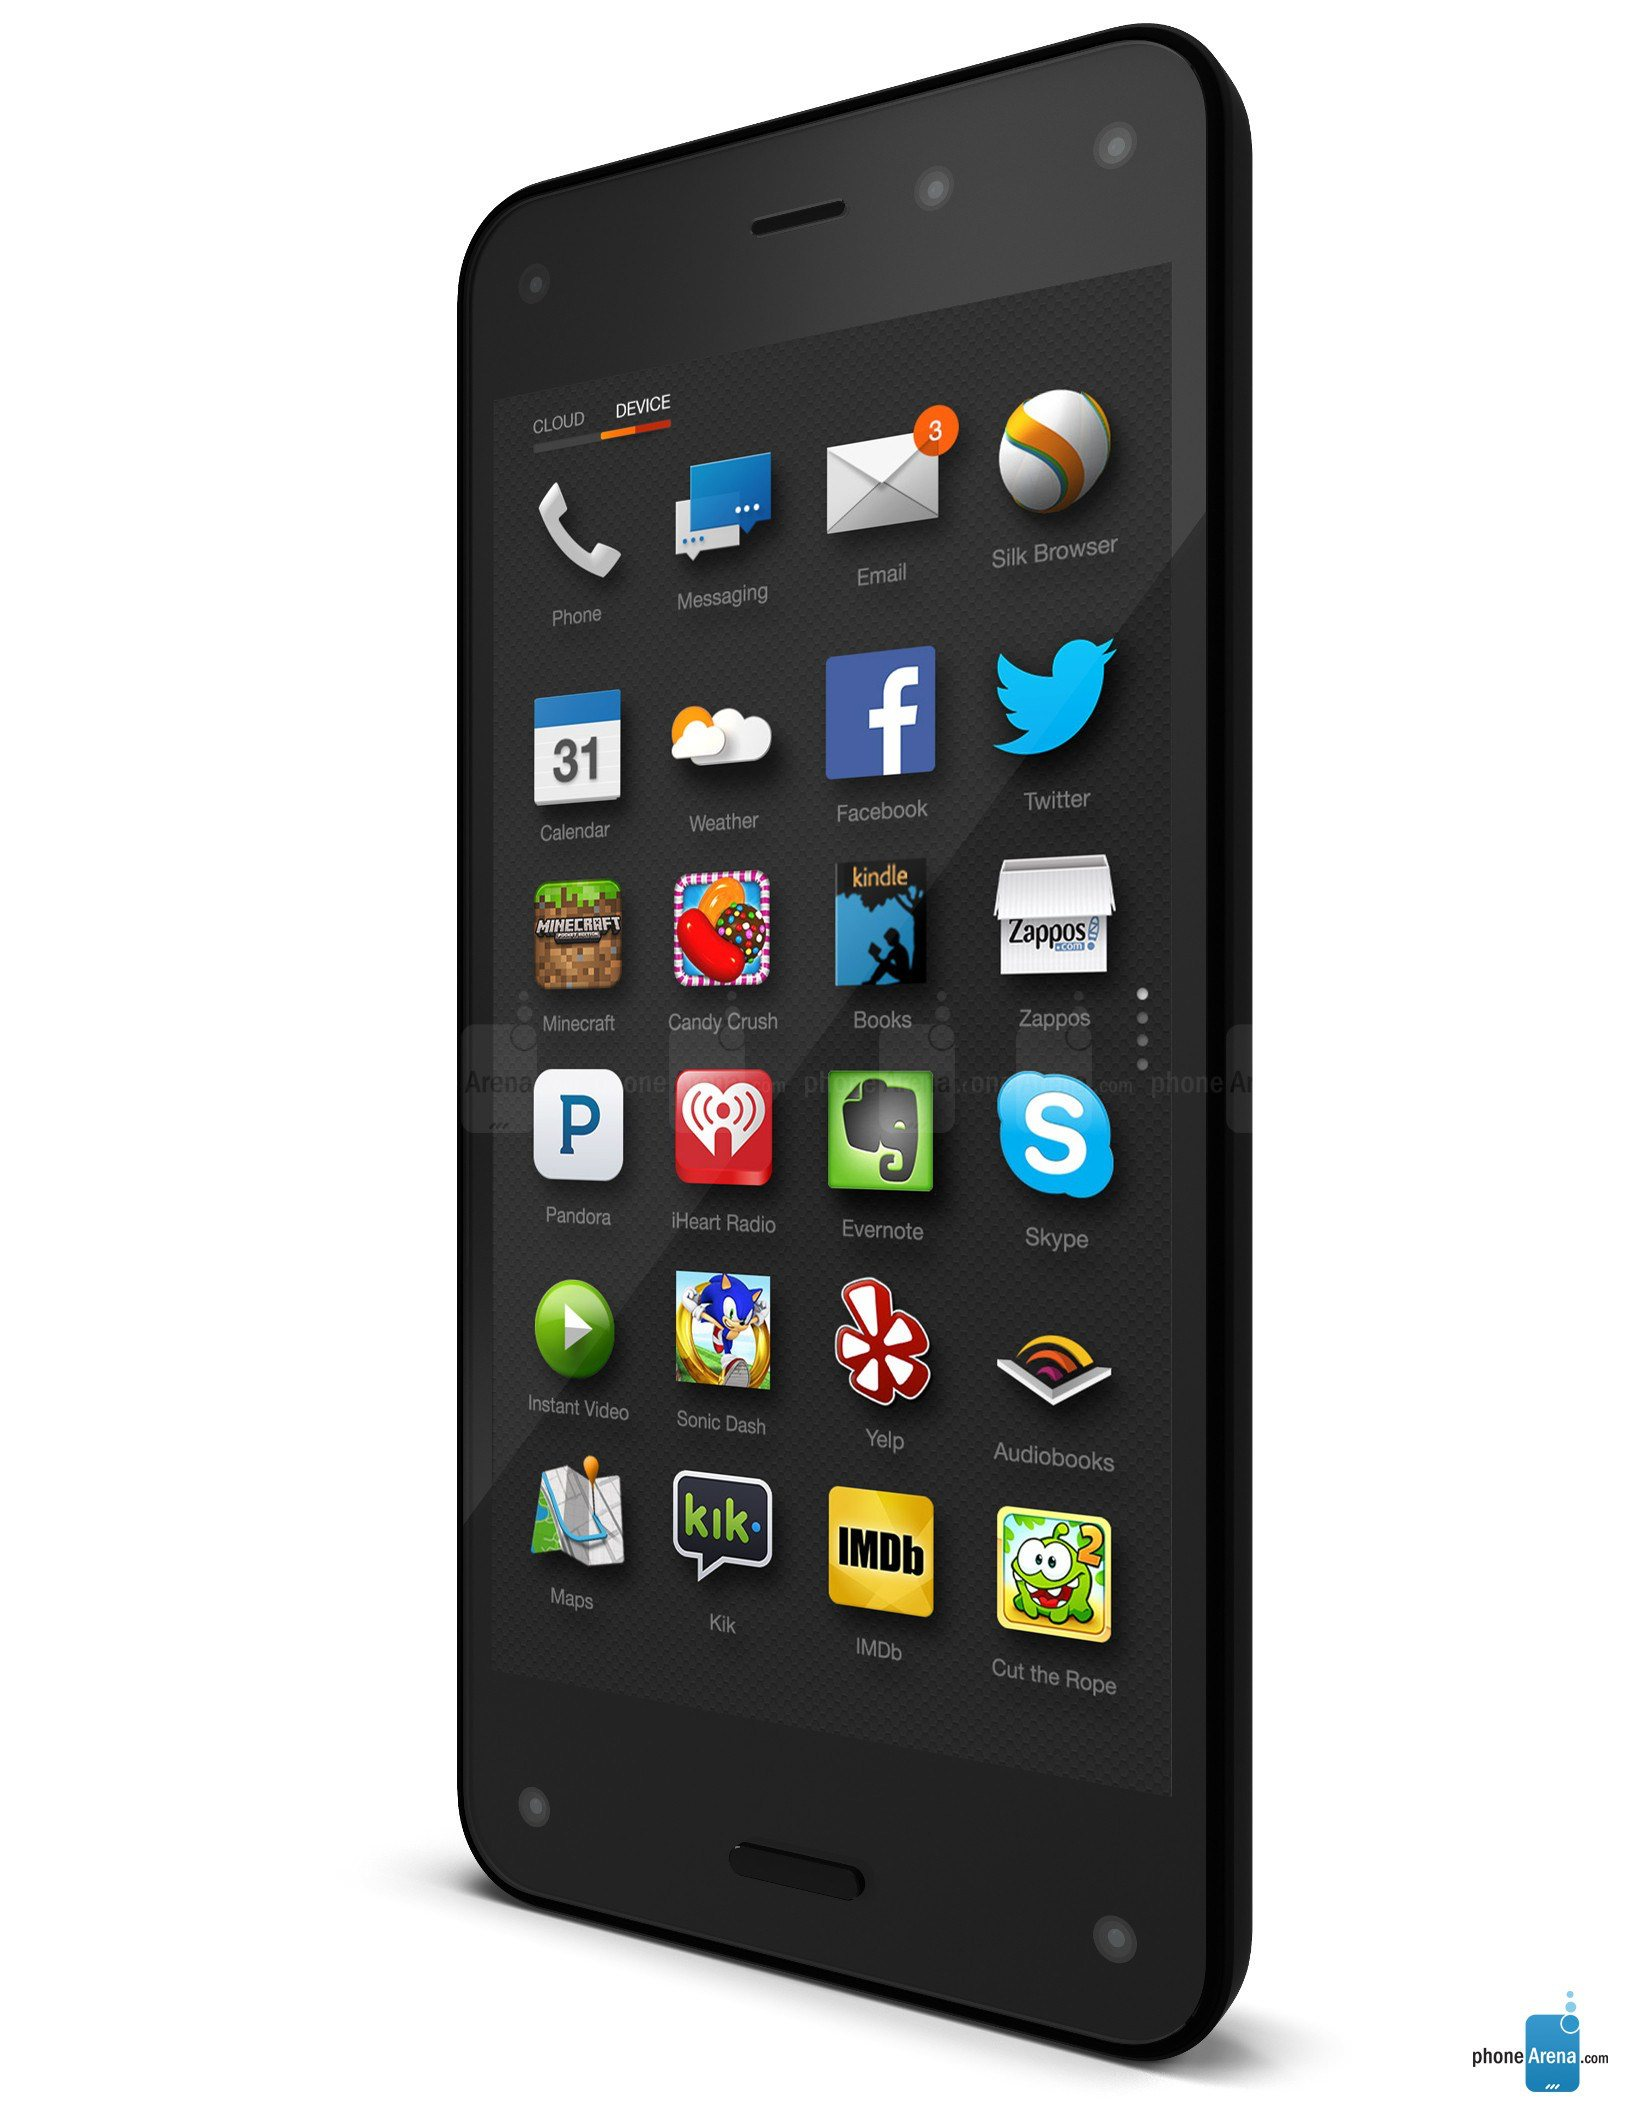 Amazon Fire Phone On Sale For $130 (includes A Year Of Prime Worth $99)